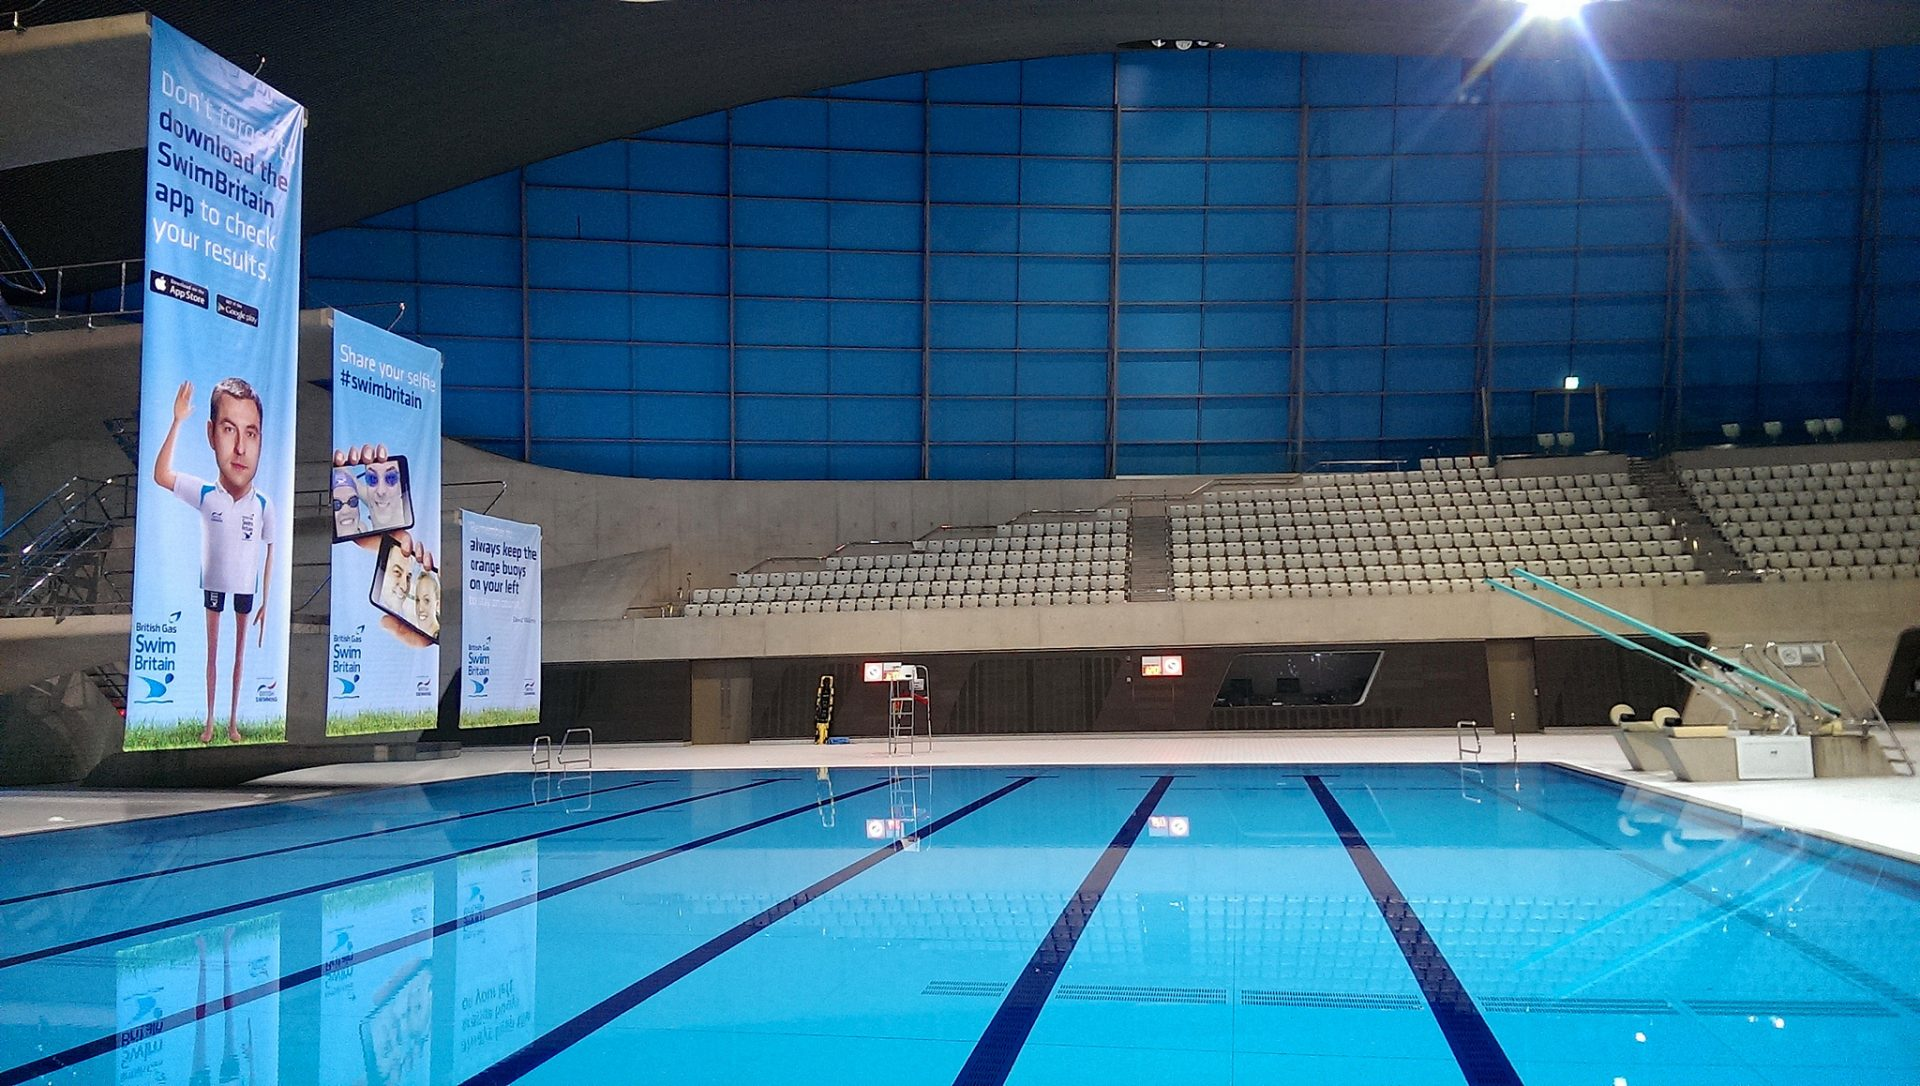 Branded hanging banners for SwimBritain Aquatic Centre by Octink